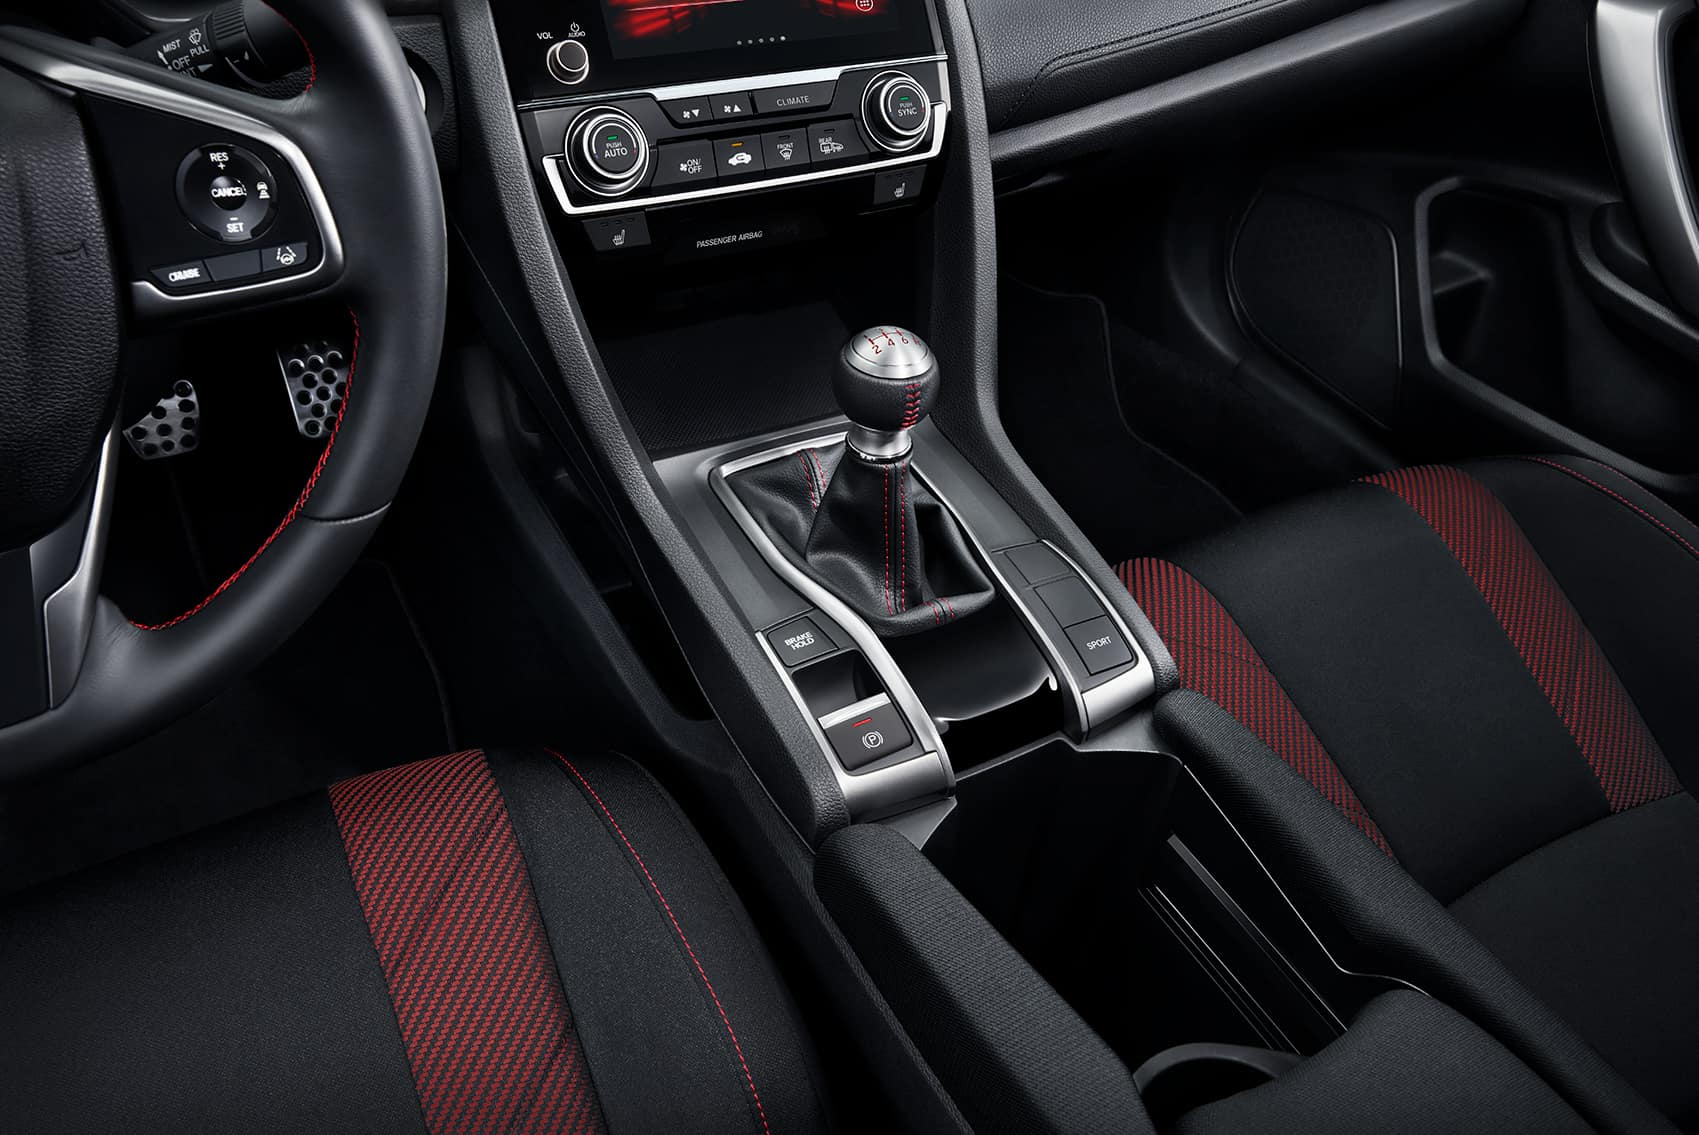 Comparison of the 2020 Civic Sedan vs. the 2020 Accord at Boch Honda West of Westford MA | the center console of the 2020 honda civic